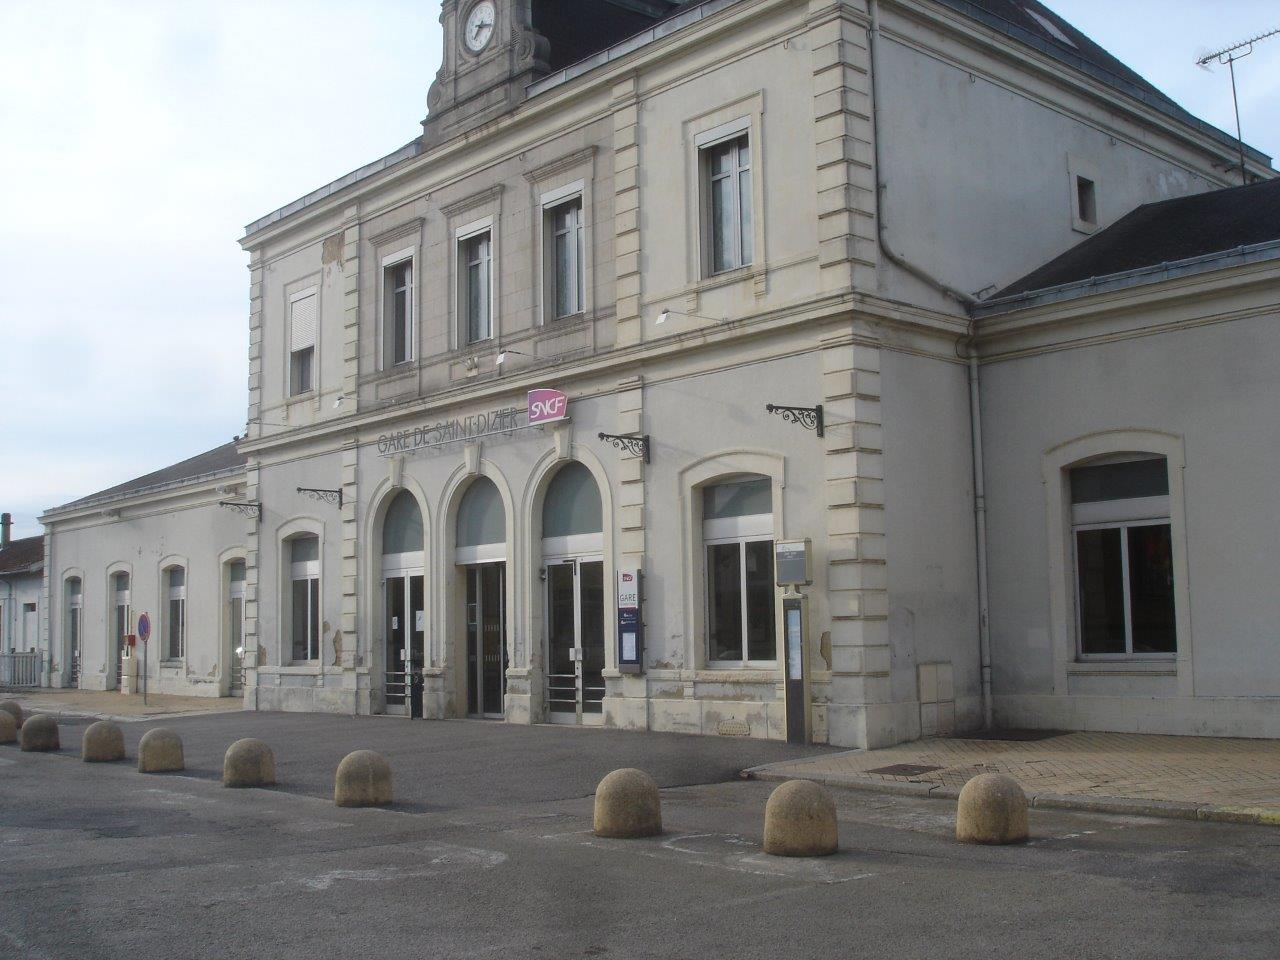 gare-de-saint-dizier-train-station